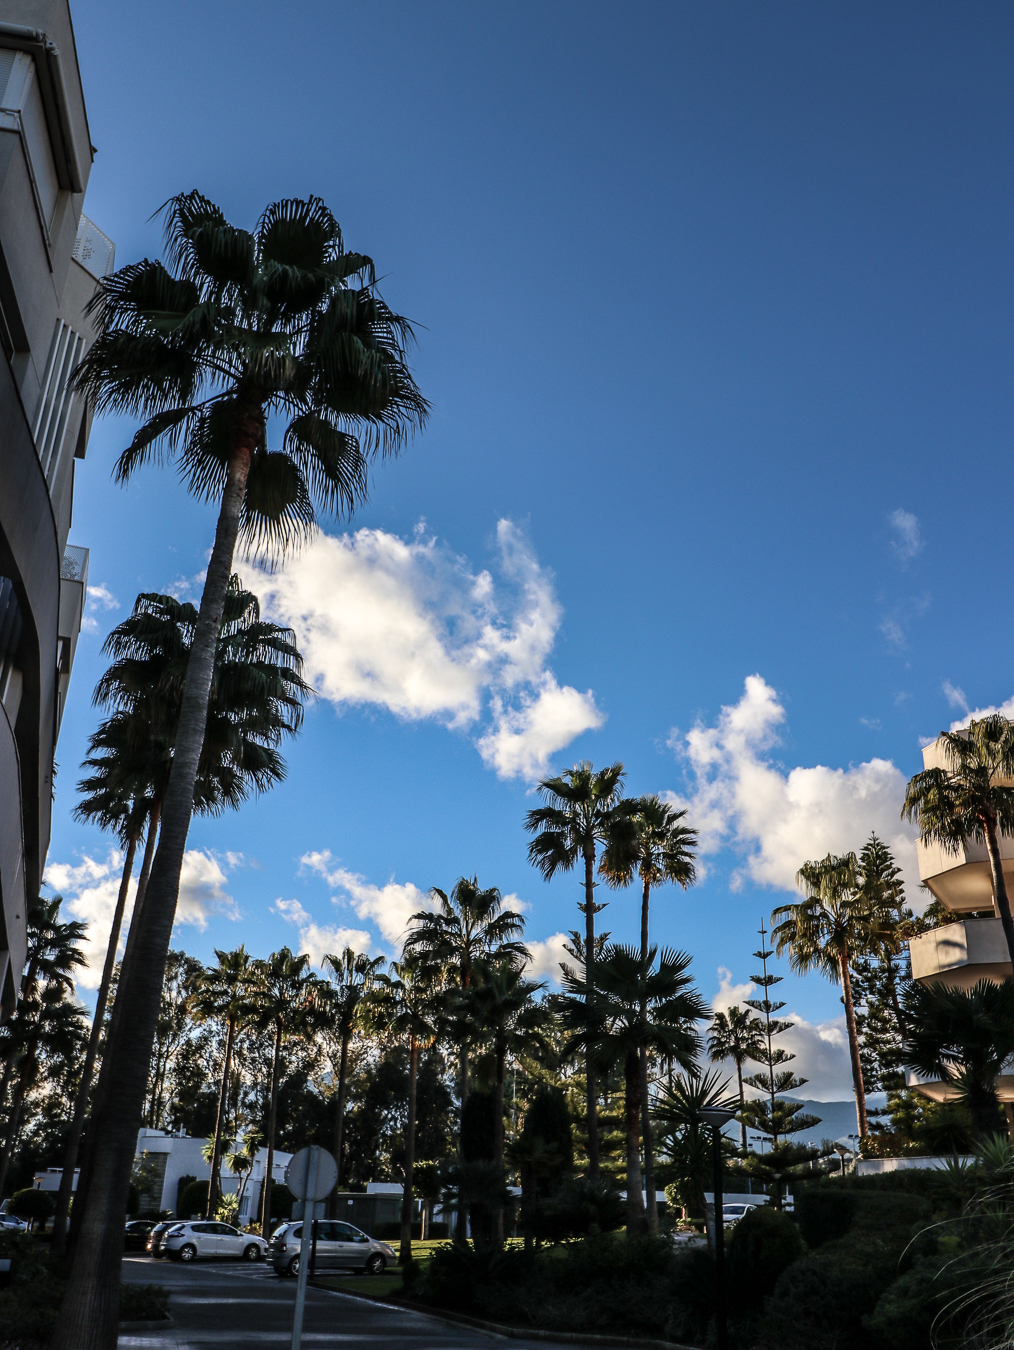 Never bored of palm trees <3